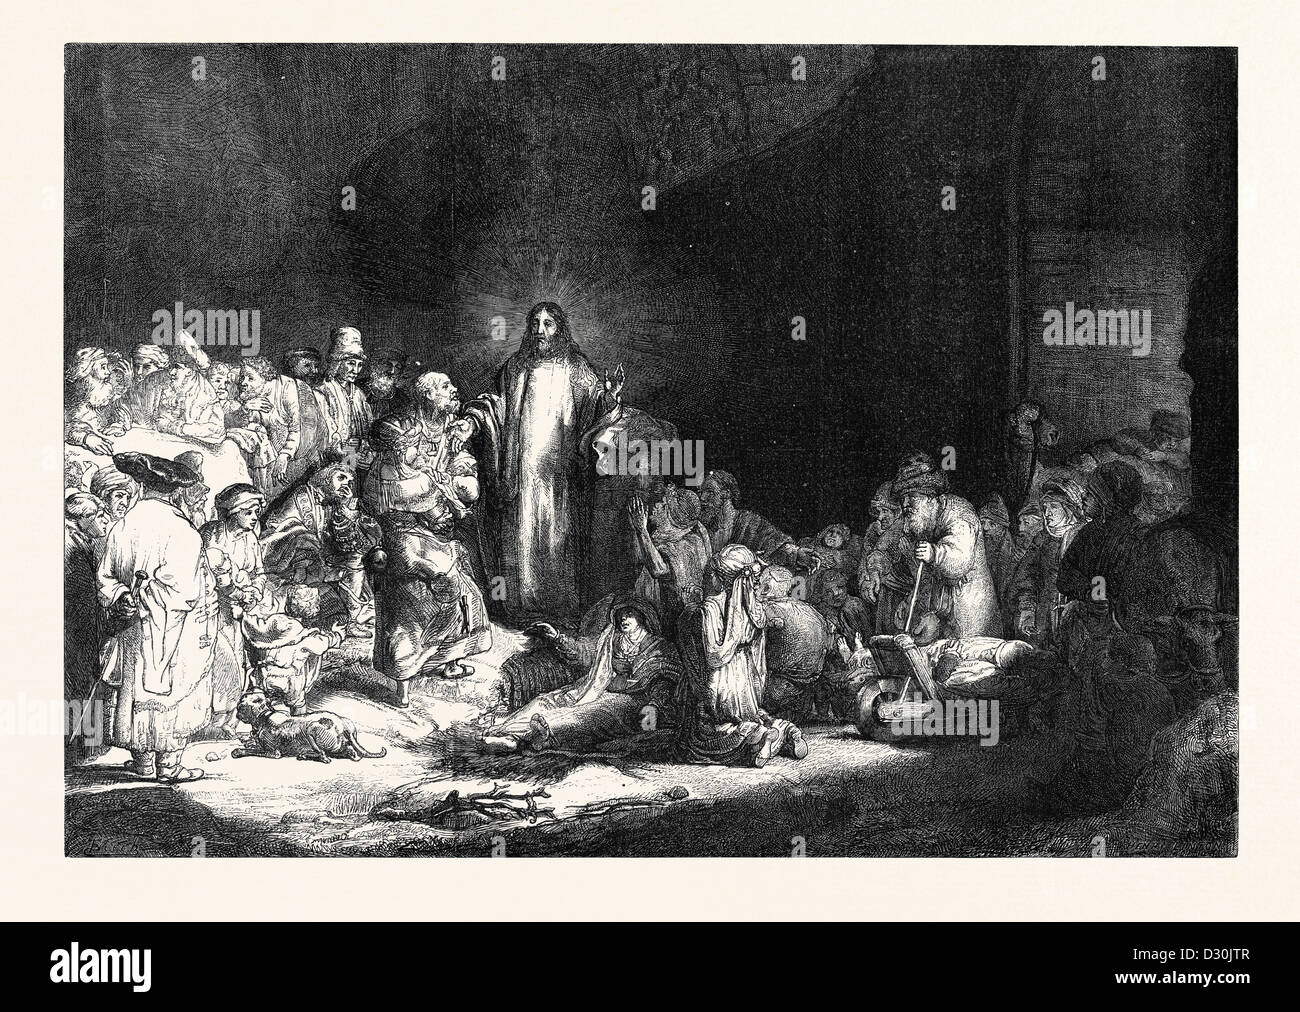 REMBRANDT'S HUNDRED GUILDER PIECE CHRIST HEALING THE SICK 1869 - Stock Image